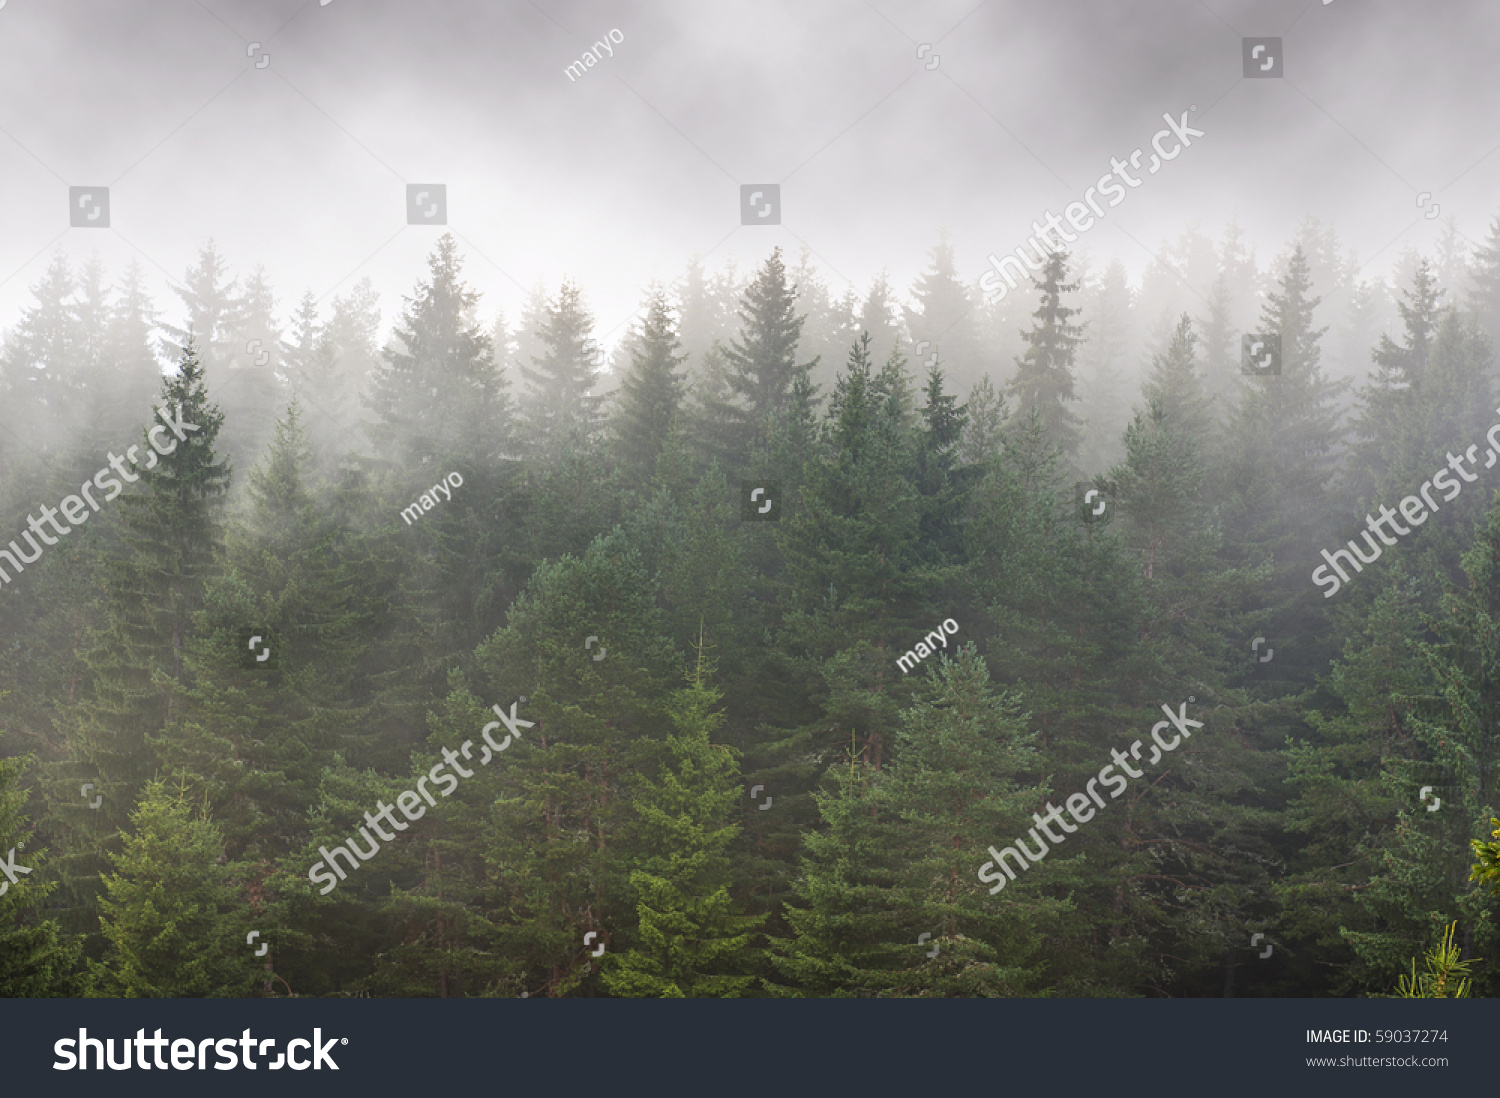 Pics For Foggy Evergreen Forest Wallpaper